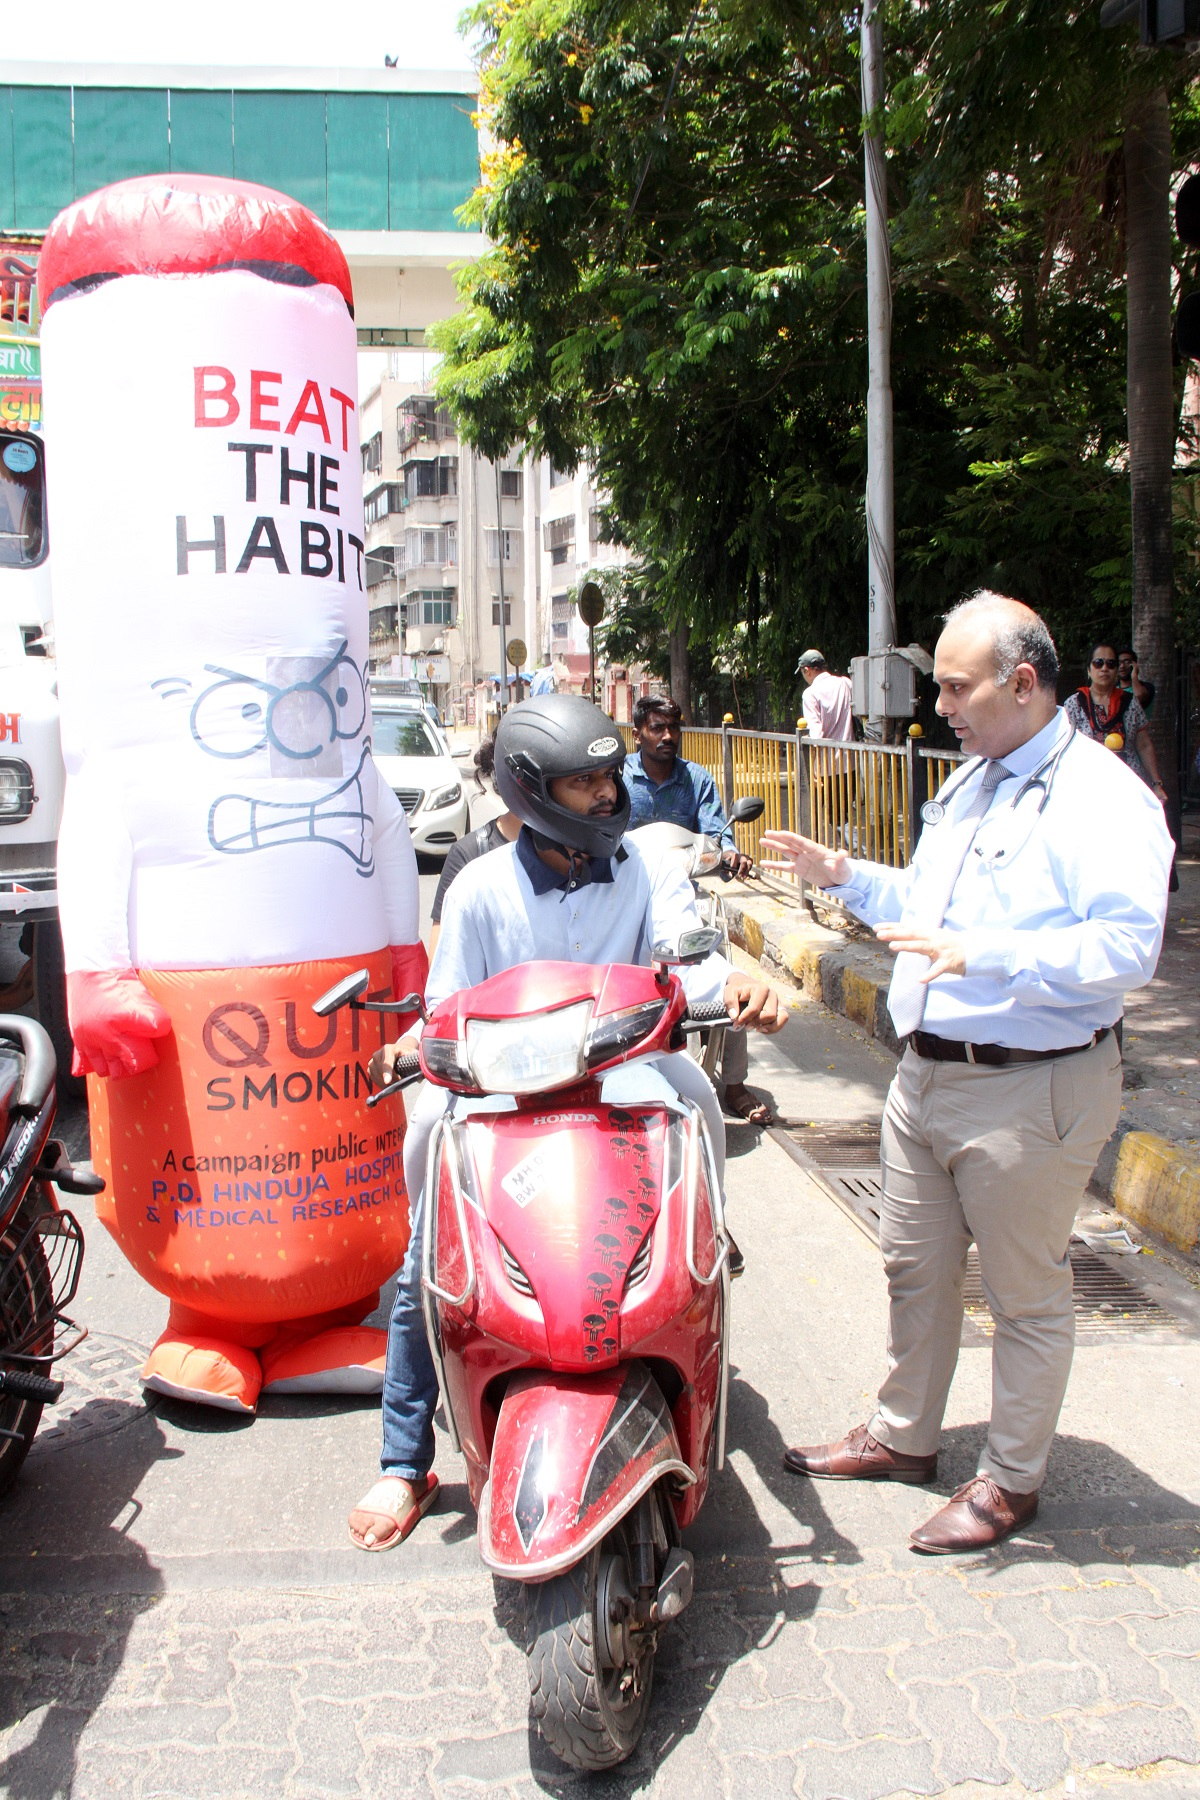 On Occasion of World No Tobacco Day - Cigarette Mascotts and Dr Lancelot Pinto encouraging people to quit smoking